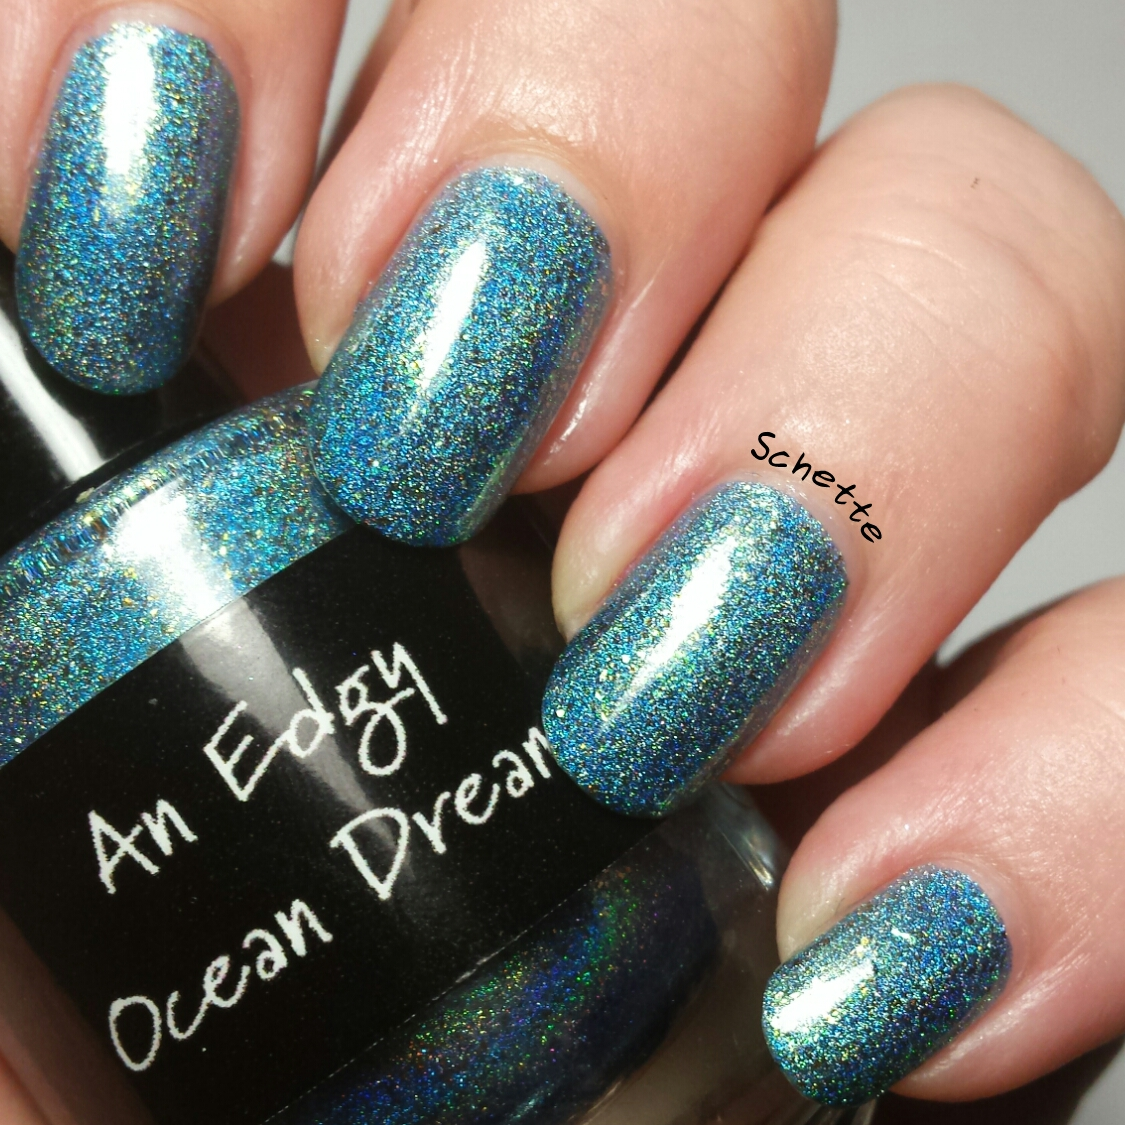 Les Vernis Exclusifs Edgy Celestial - Lost Sapphire, Crows Toes An Edgy Ocean Dream et Darling Diva Living On The Edge